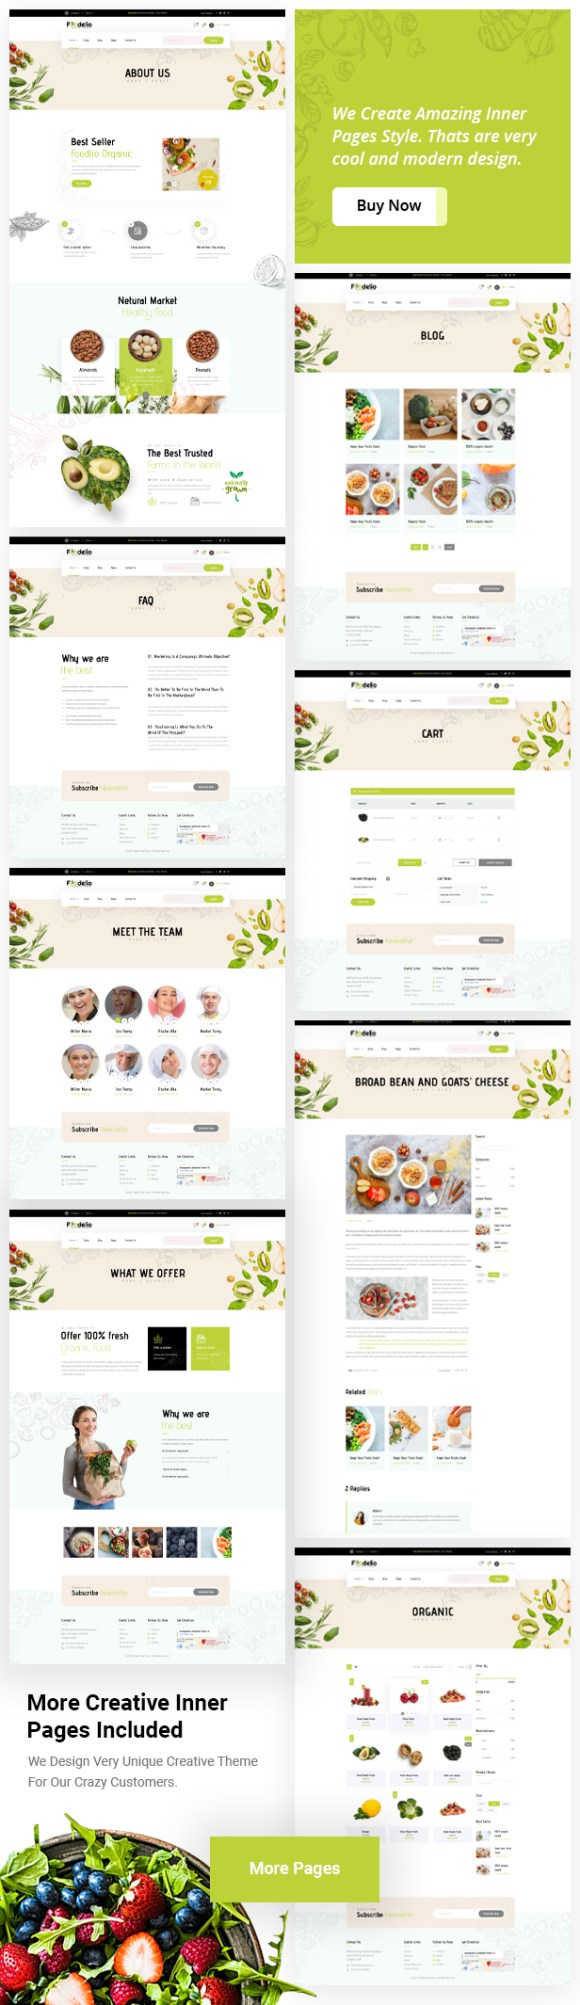 foodelio-inner-page